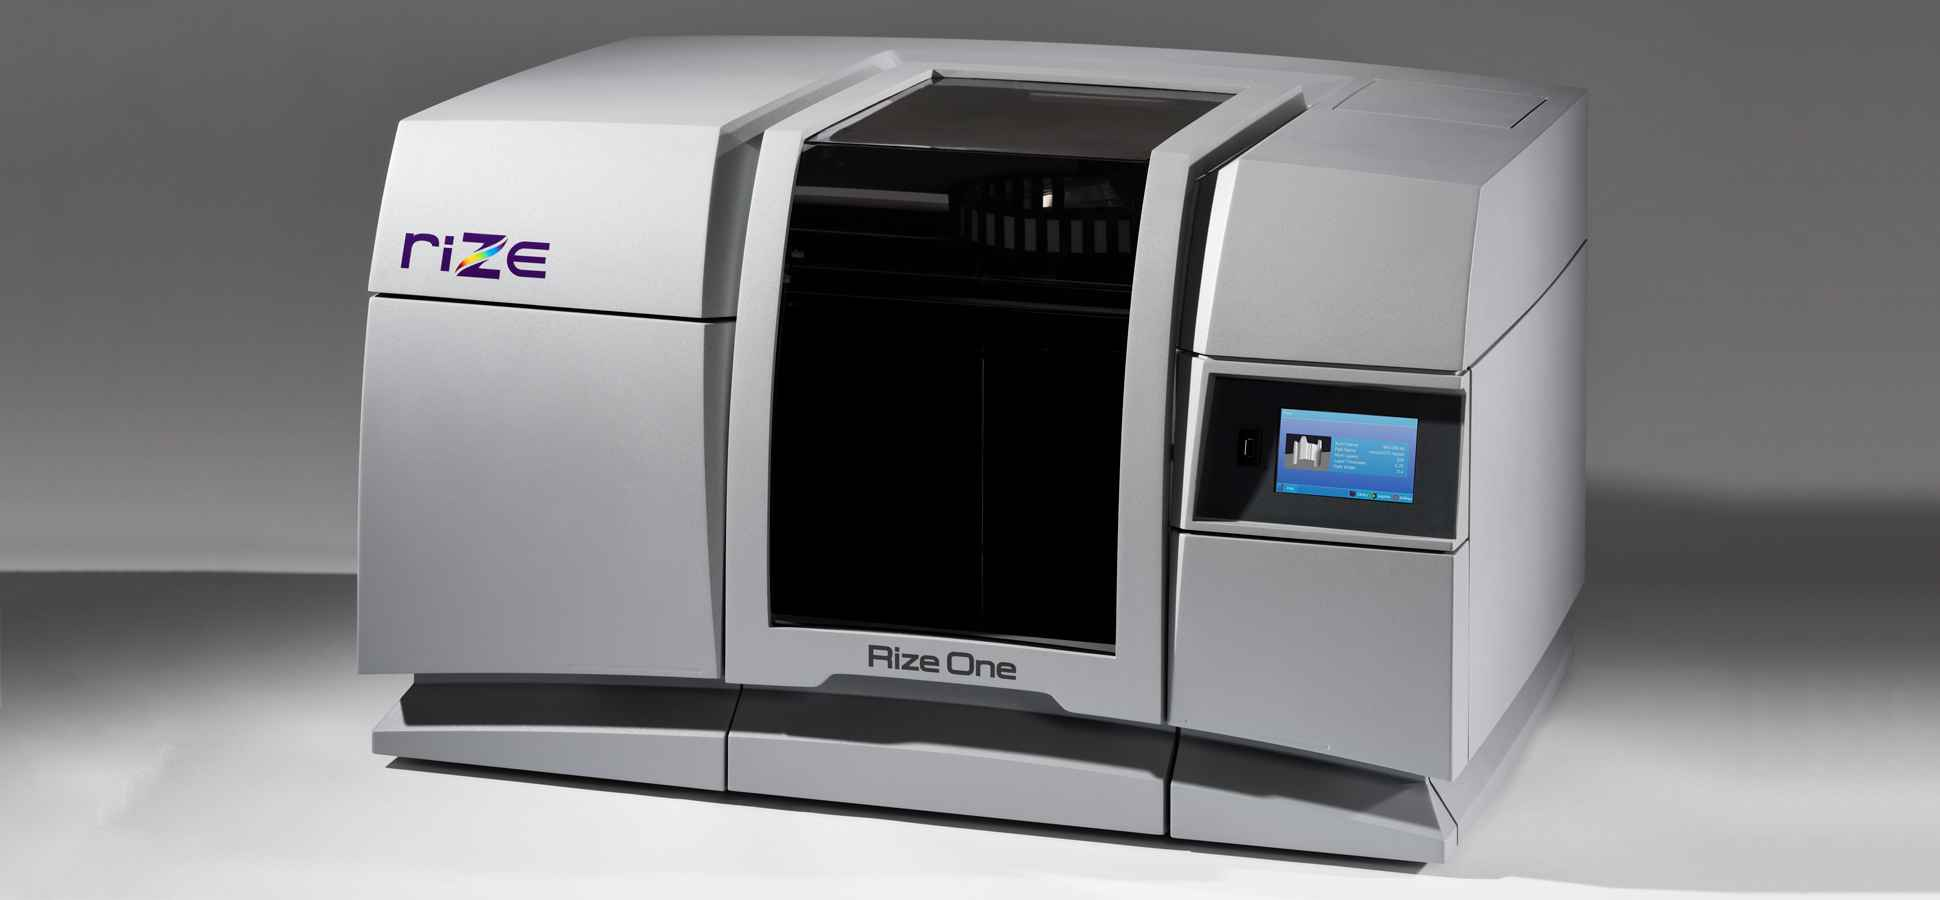 How This Company Could Revolutionize the 3-D Printing Industry